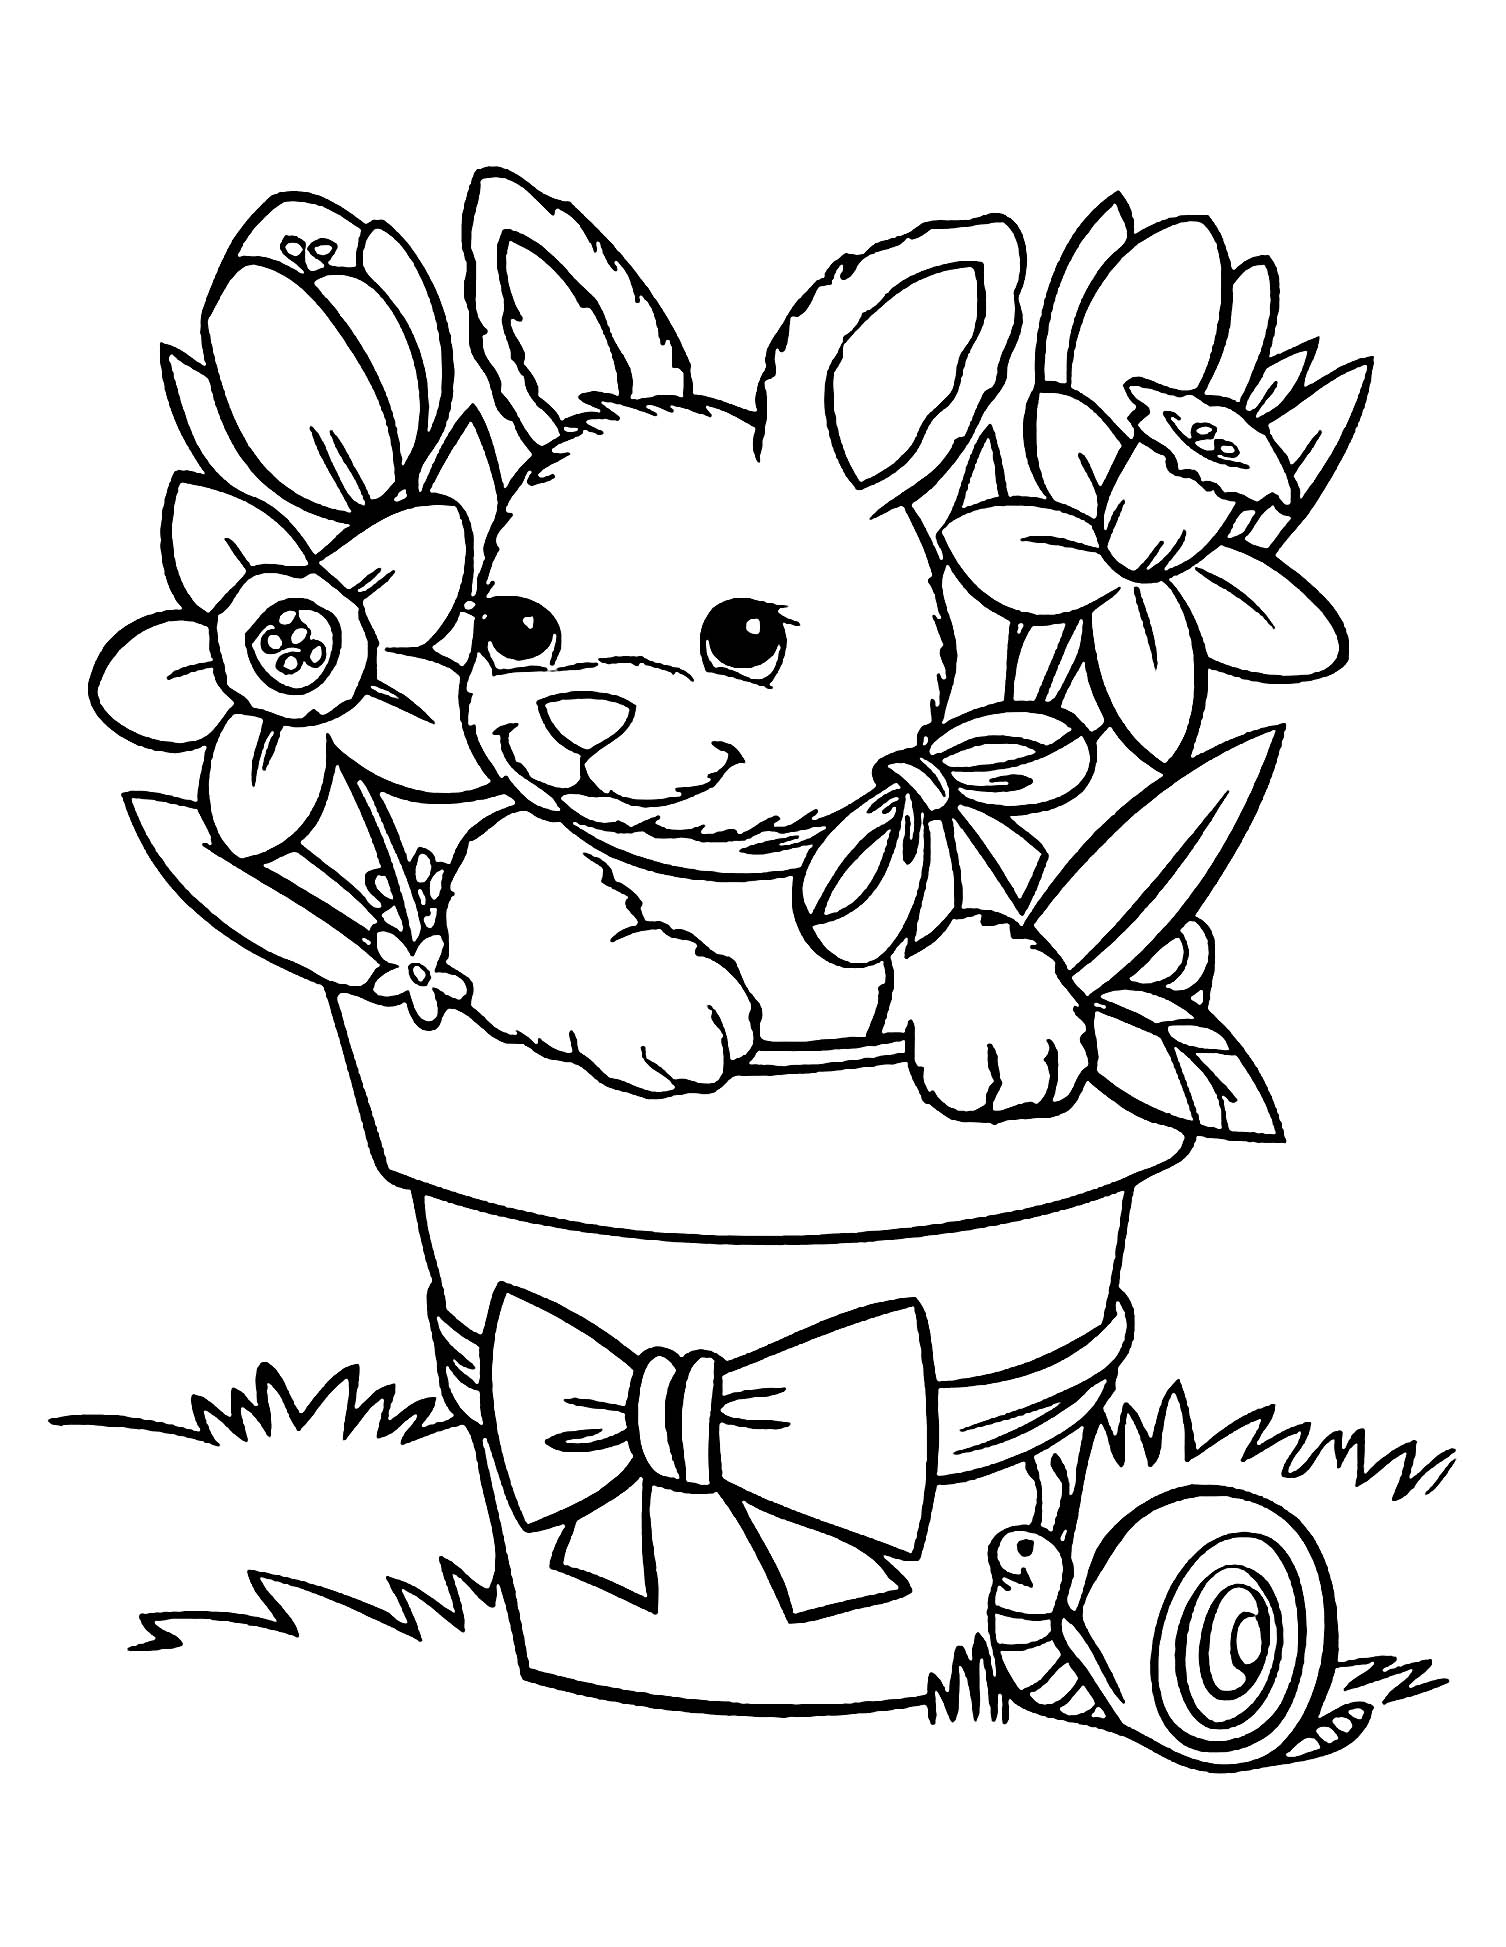 rabbit coloring for kids rabbit coloring pages free download on clipartmag for kids coloring rabbit